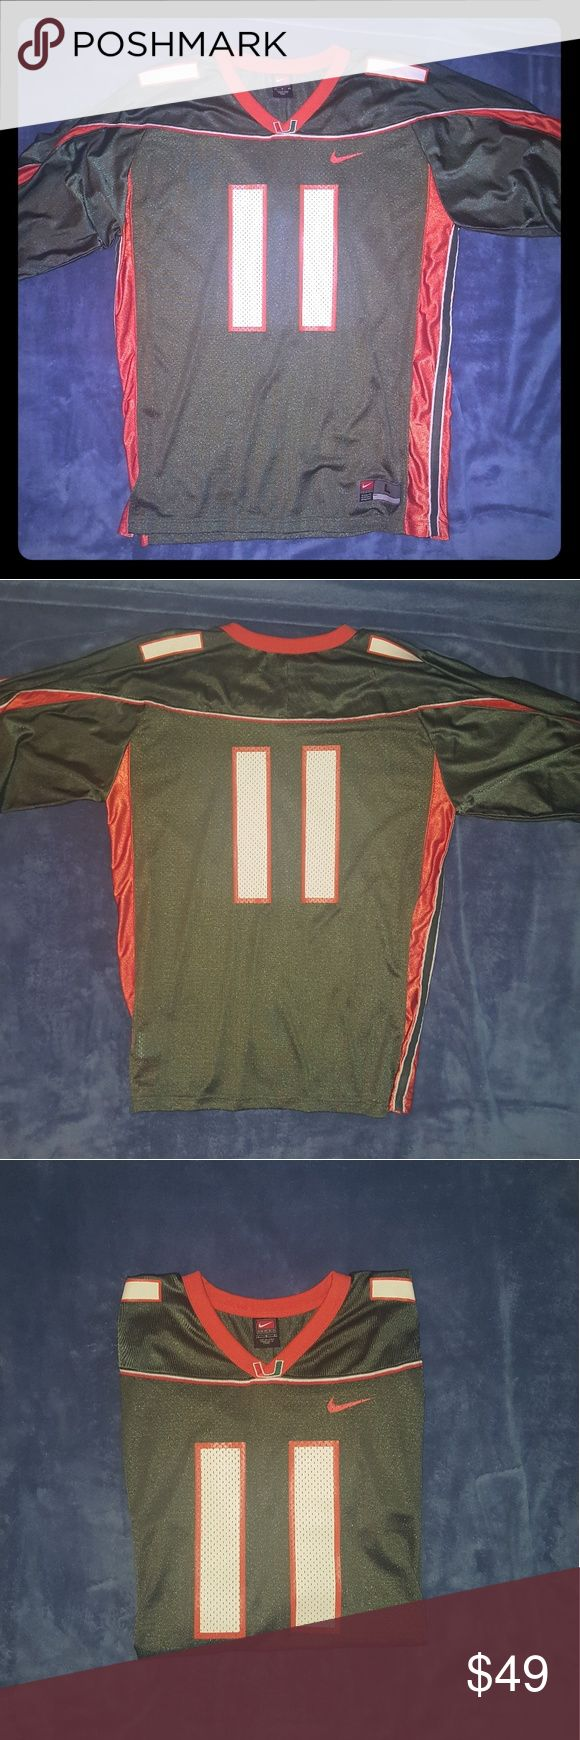 Nike Miami Hurricanes #11 game jersey Miami Hurricanes game jersey, size L,  perfect for Saturday's, nylon and polyester Nike Shirts Tees - Short Sleeve